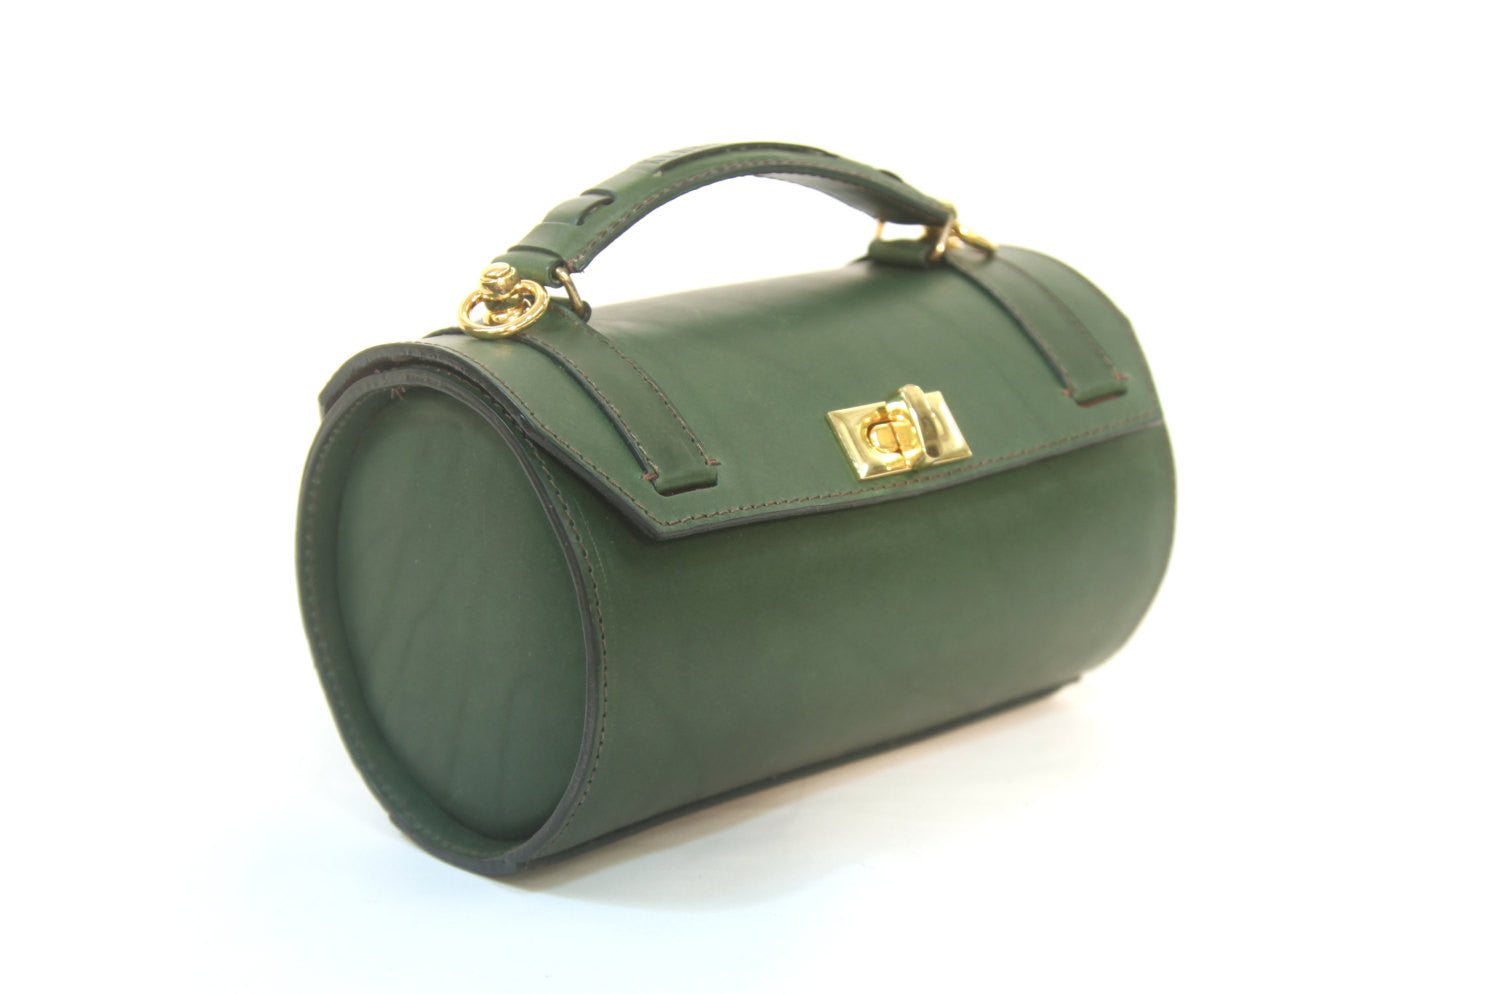 Cylindrical Luxury Handbag